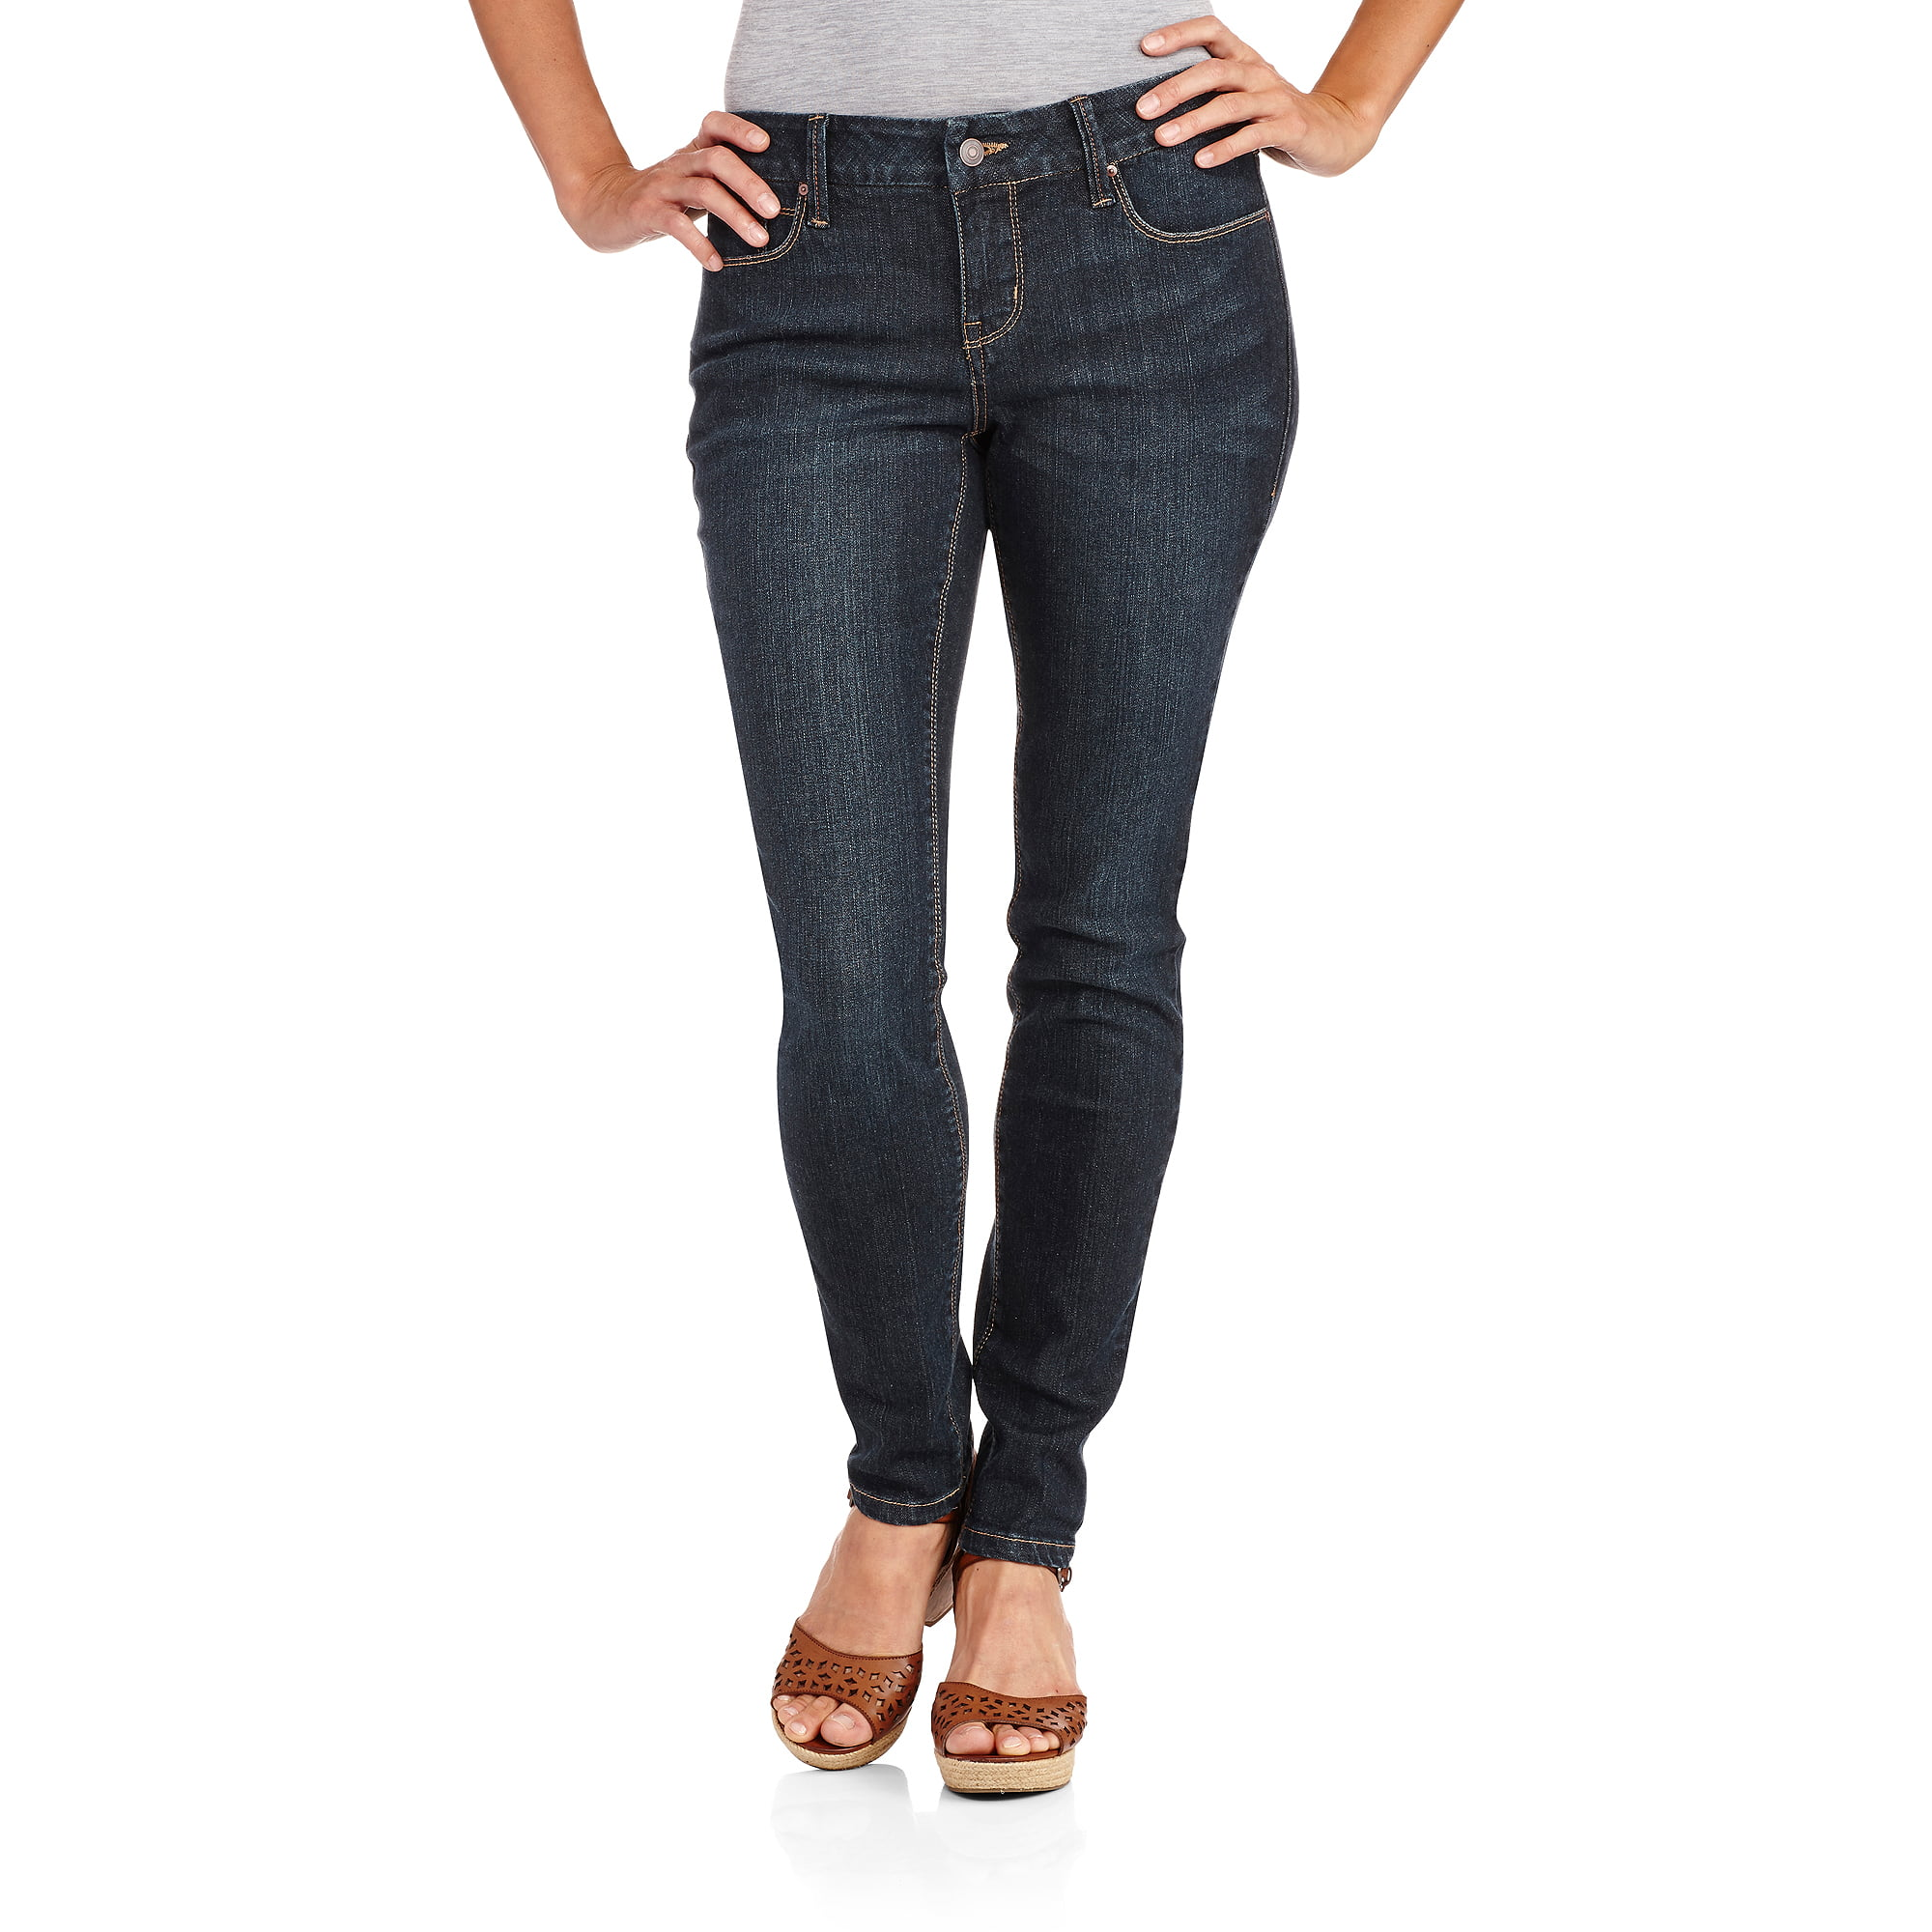 Faded Glory Women&39s Core Skinny Jeans available in Regular and